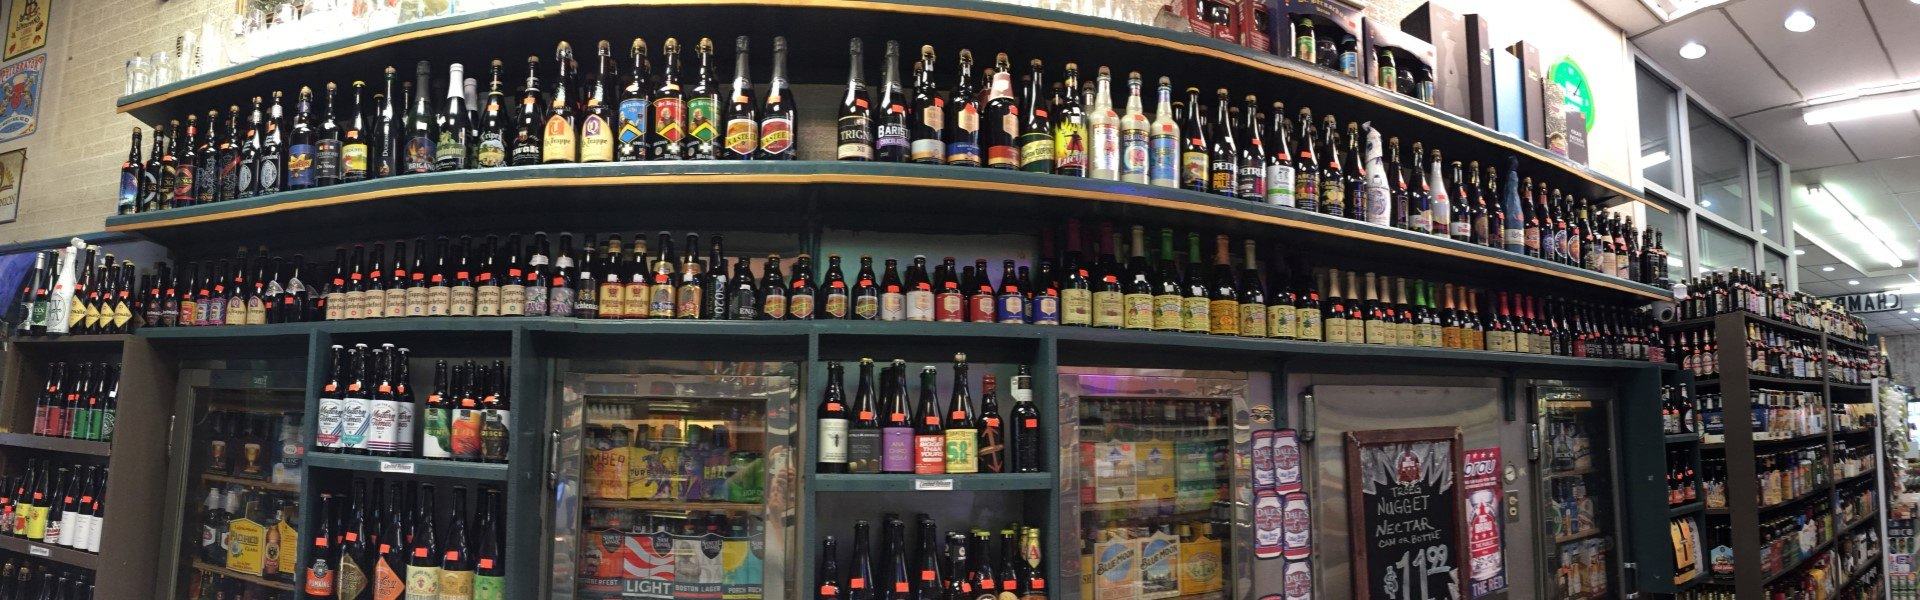 AMAZING SELECTION OF BOTTLED BEER